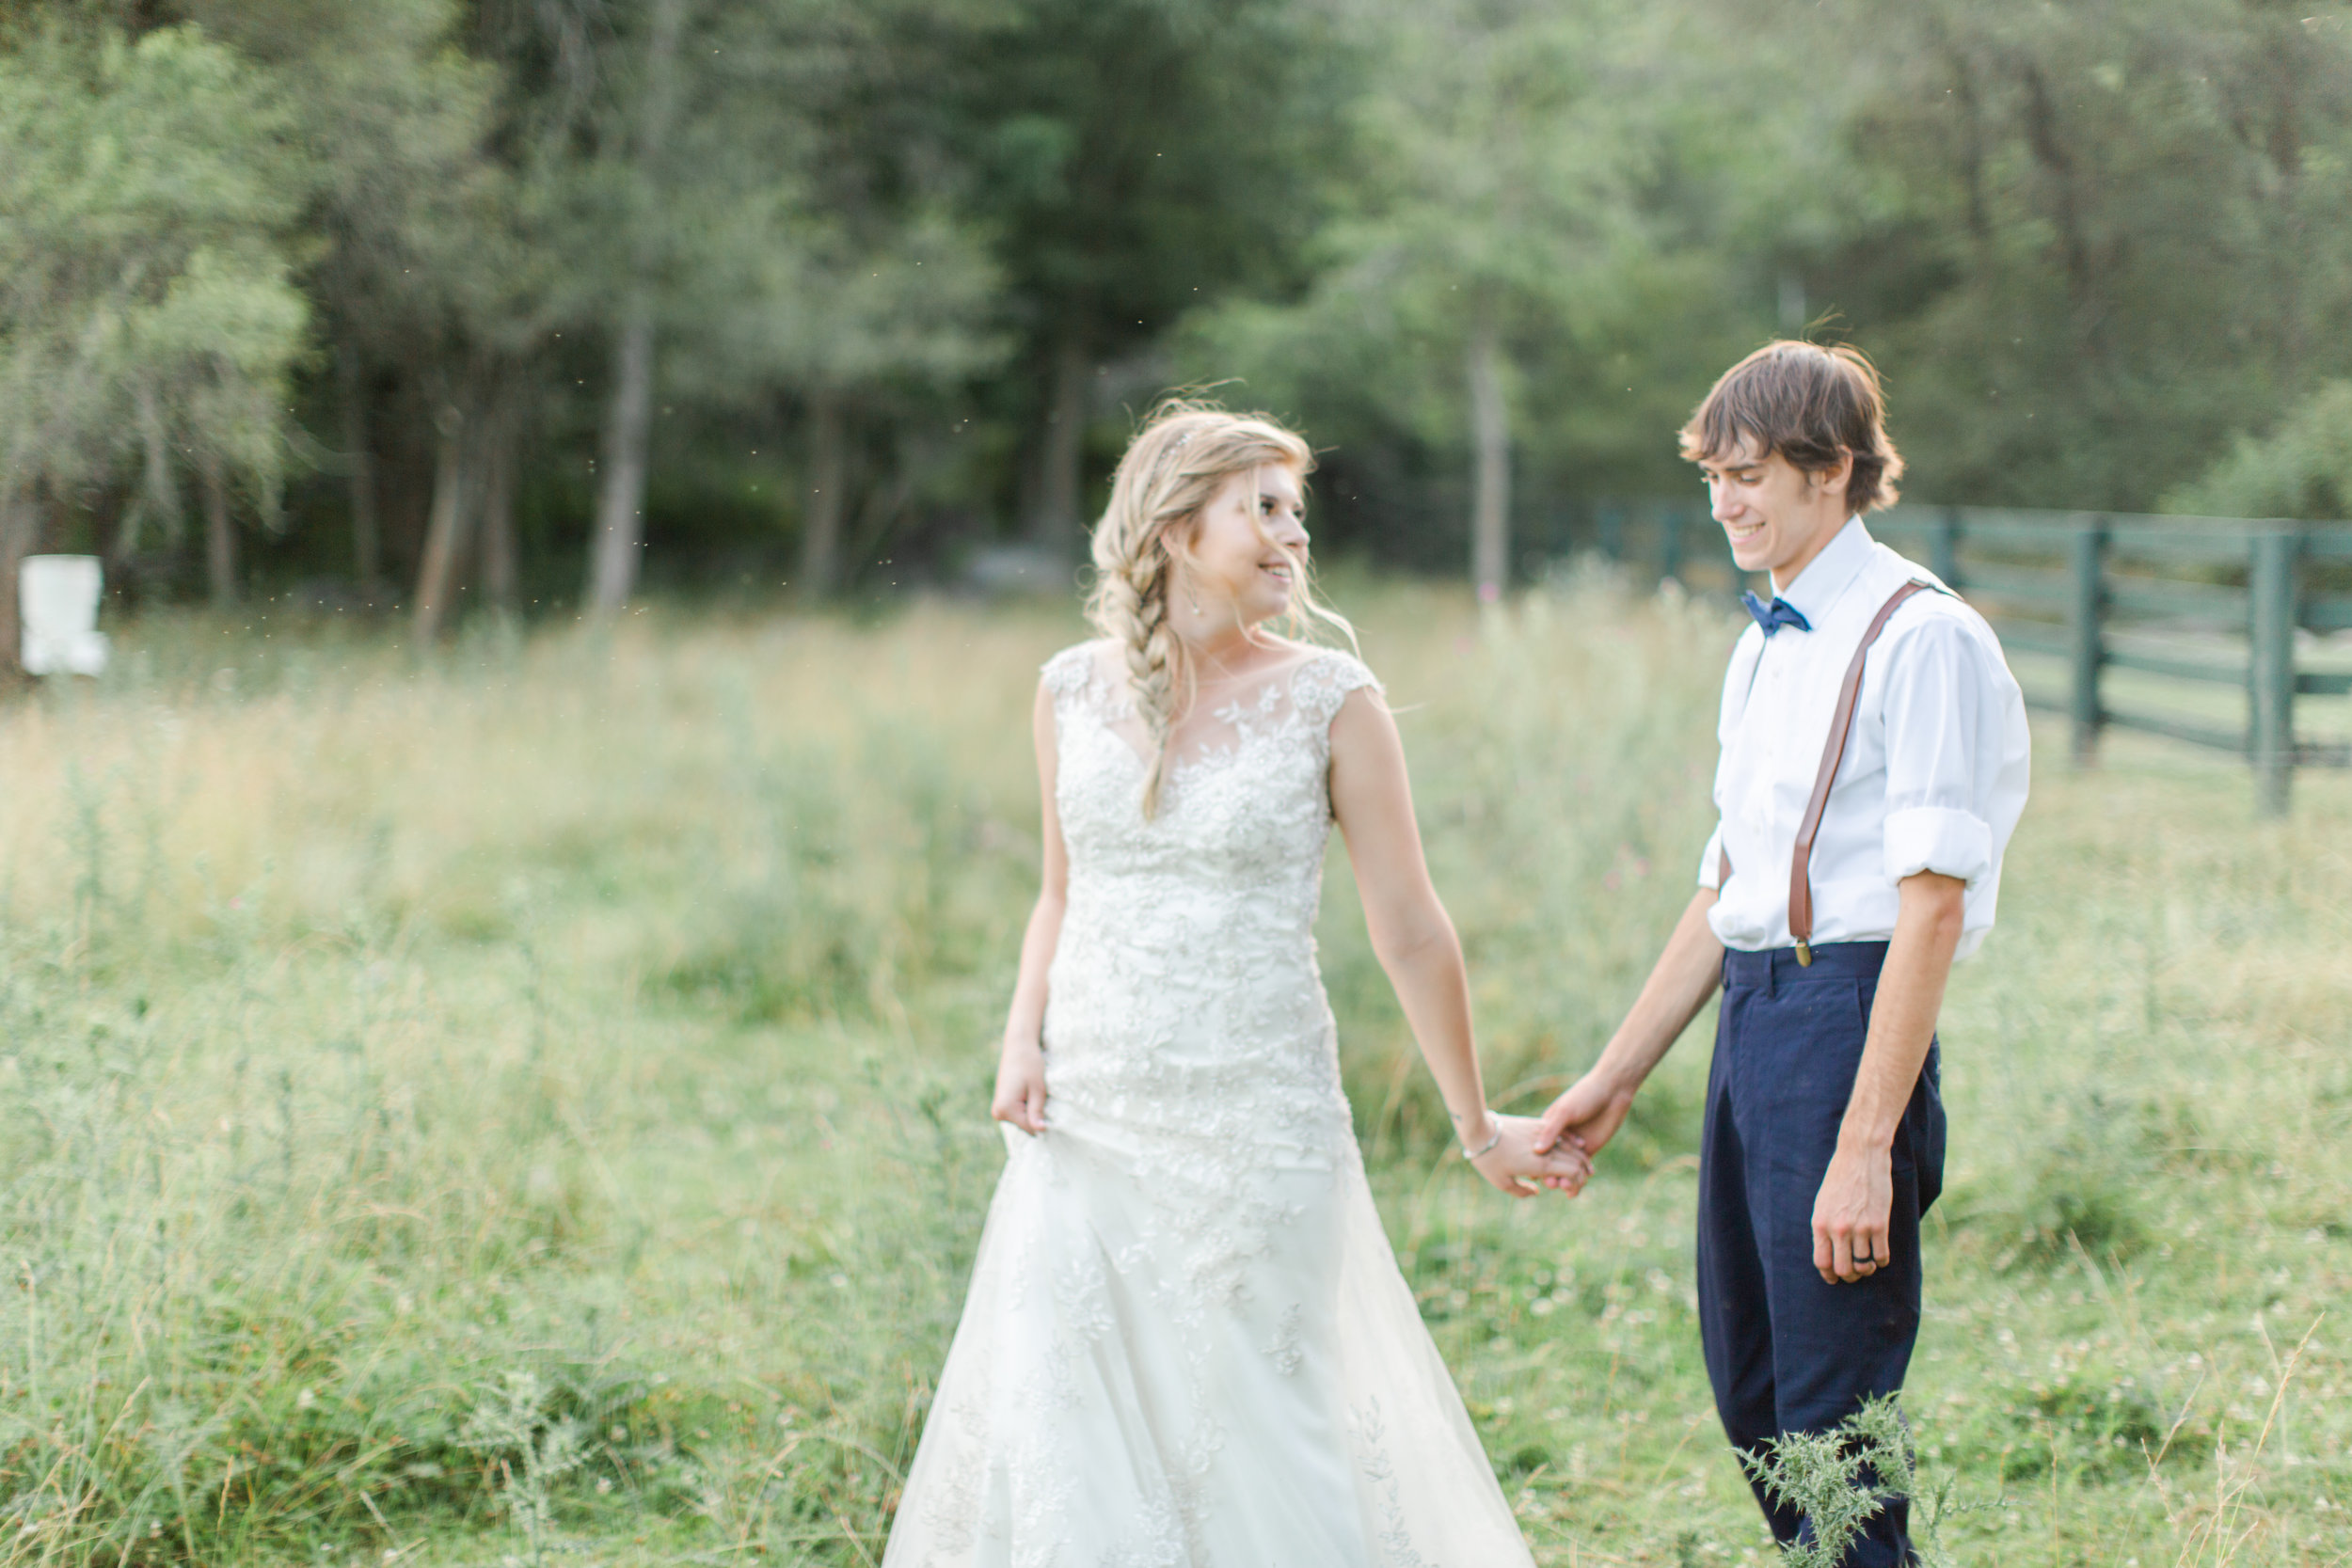 ivory-and-beau-weddings-savannah-bridal-boutique-southern-florist-weddings-bridal-shop-down-for-the-gown-image8.jpeg